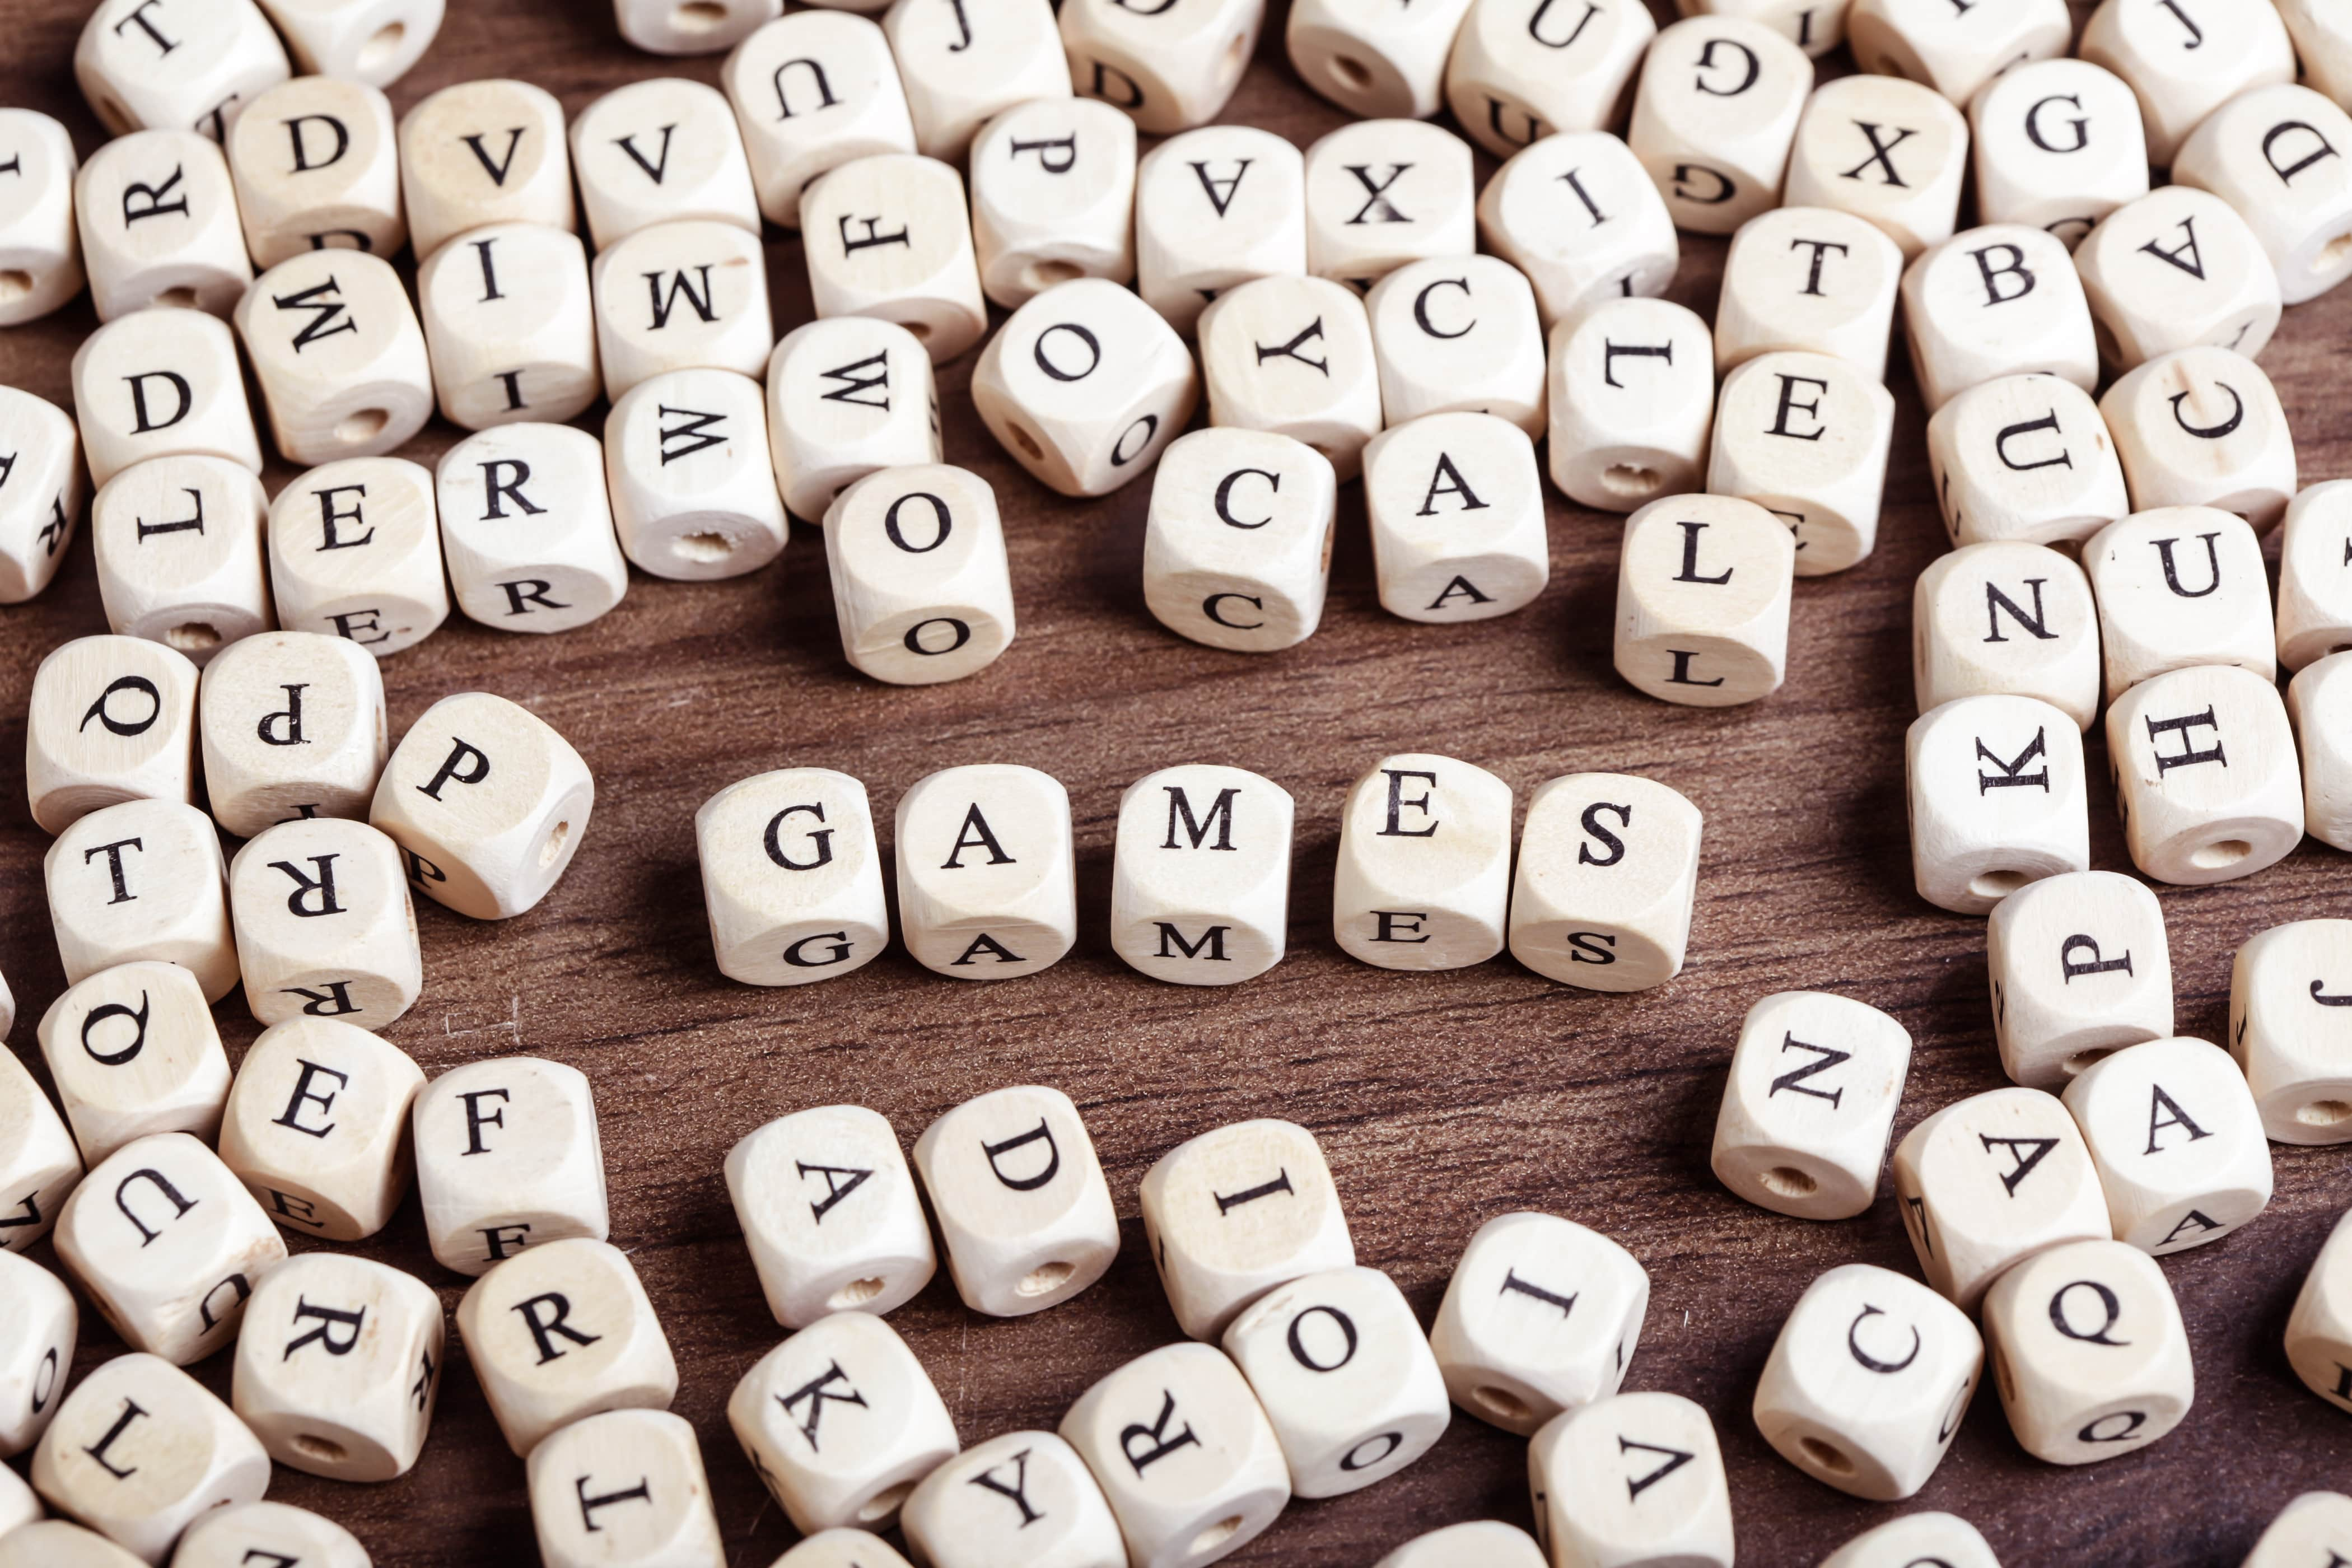 How to Earn Money Playing Word Games on iRazoo